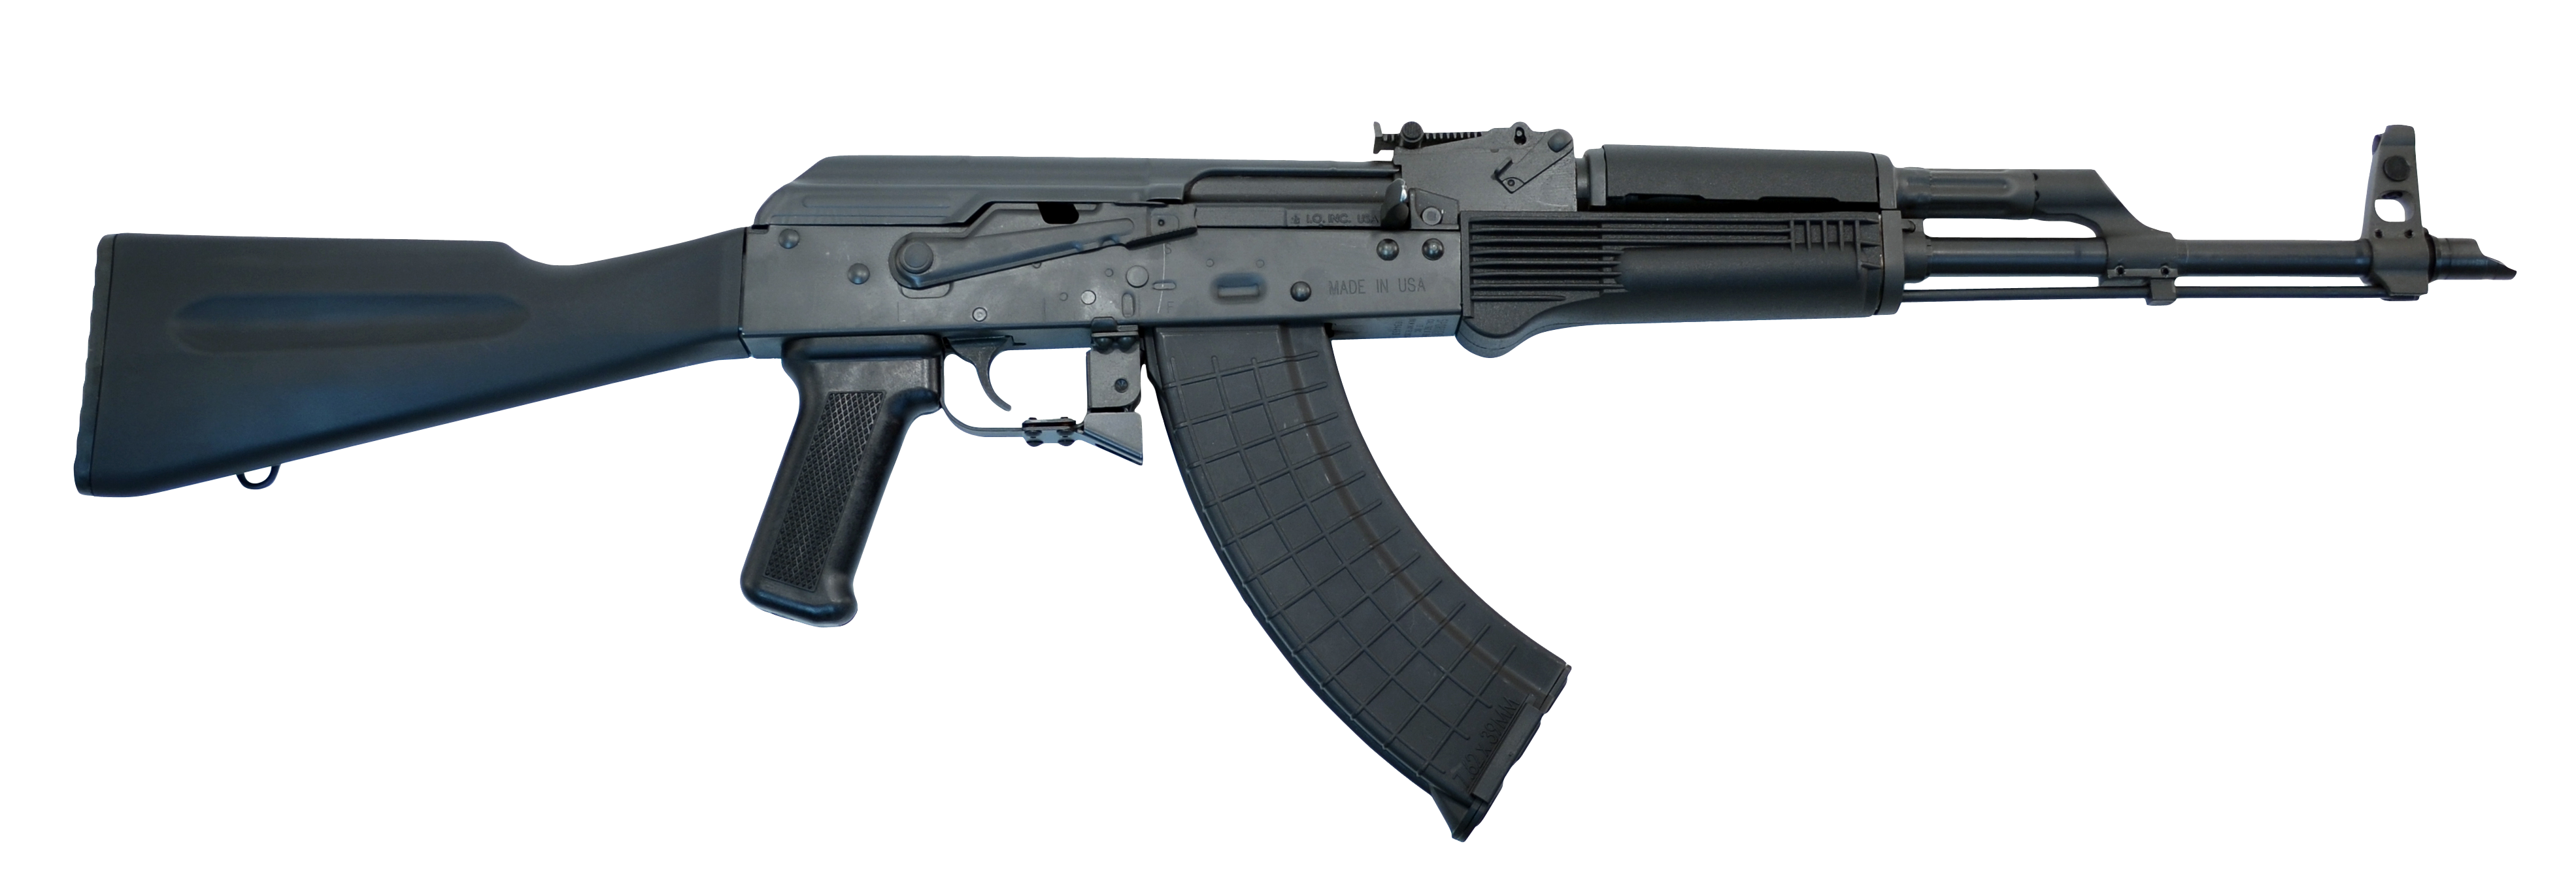 I.O. IODM AKM247 *CA Compliant* Semi-Automatic 7.62x39mm 16.25